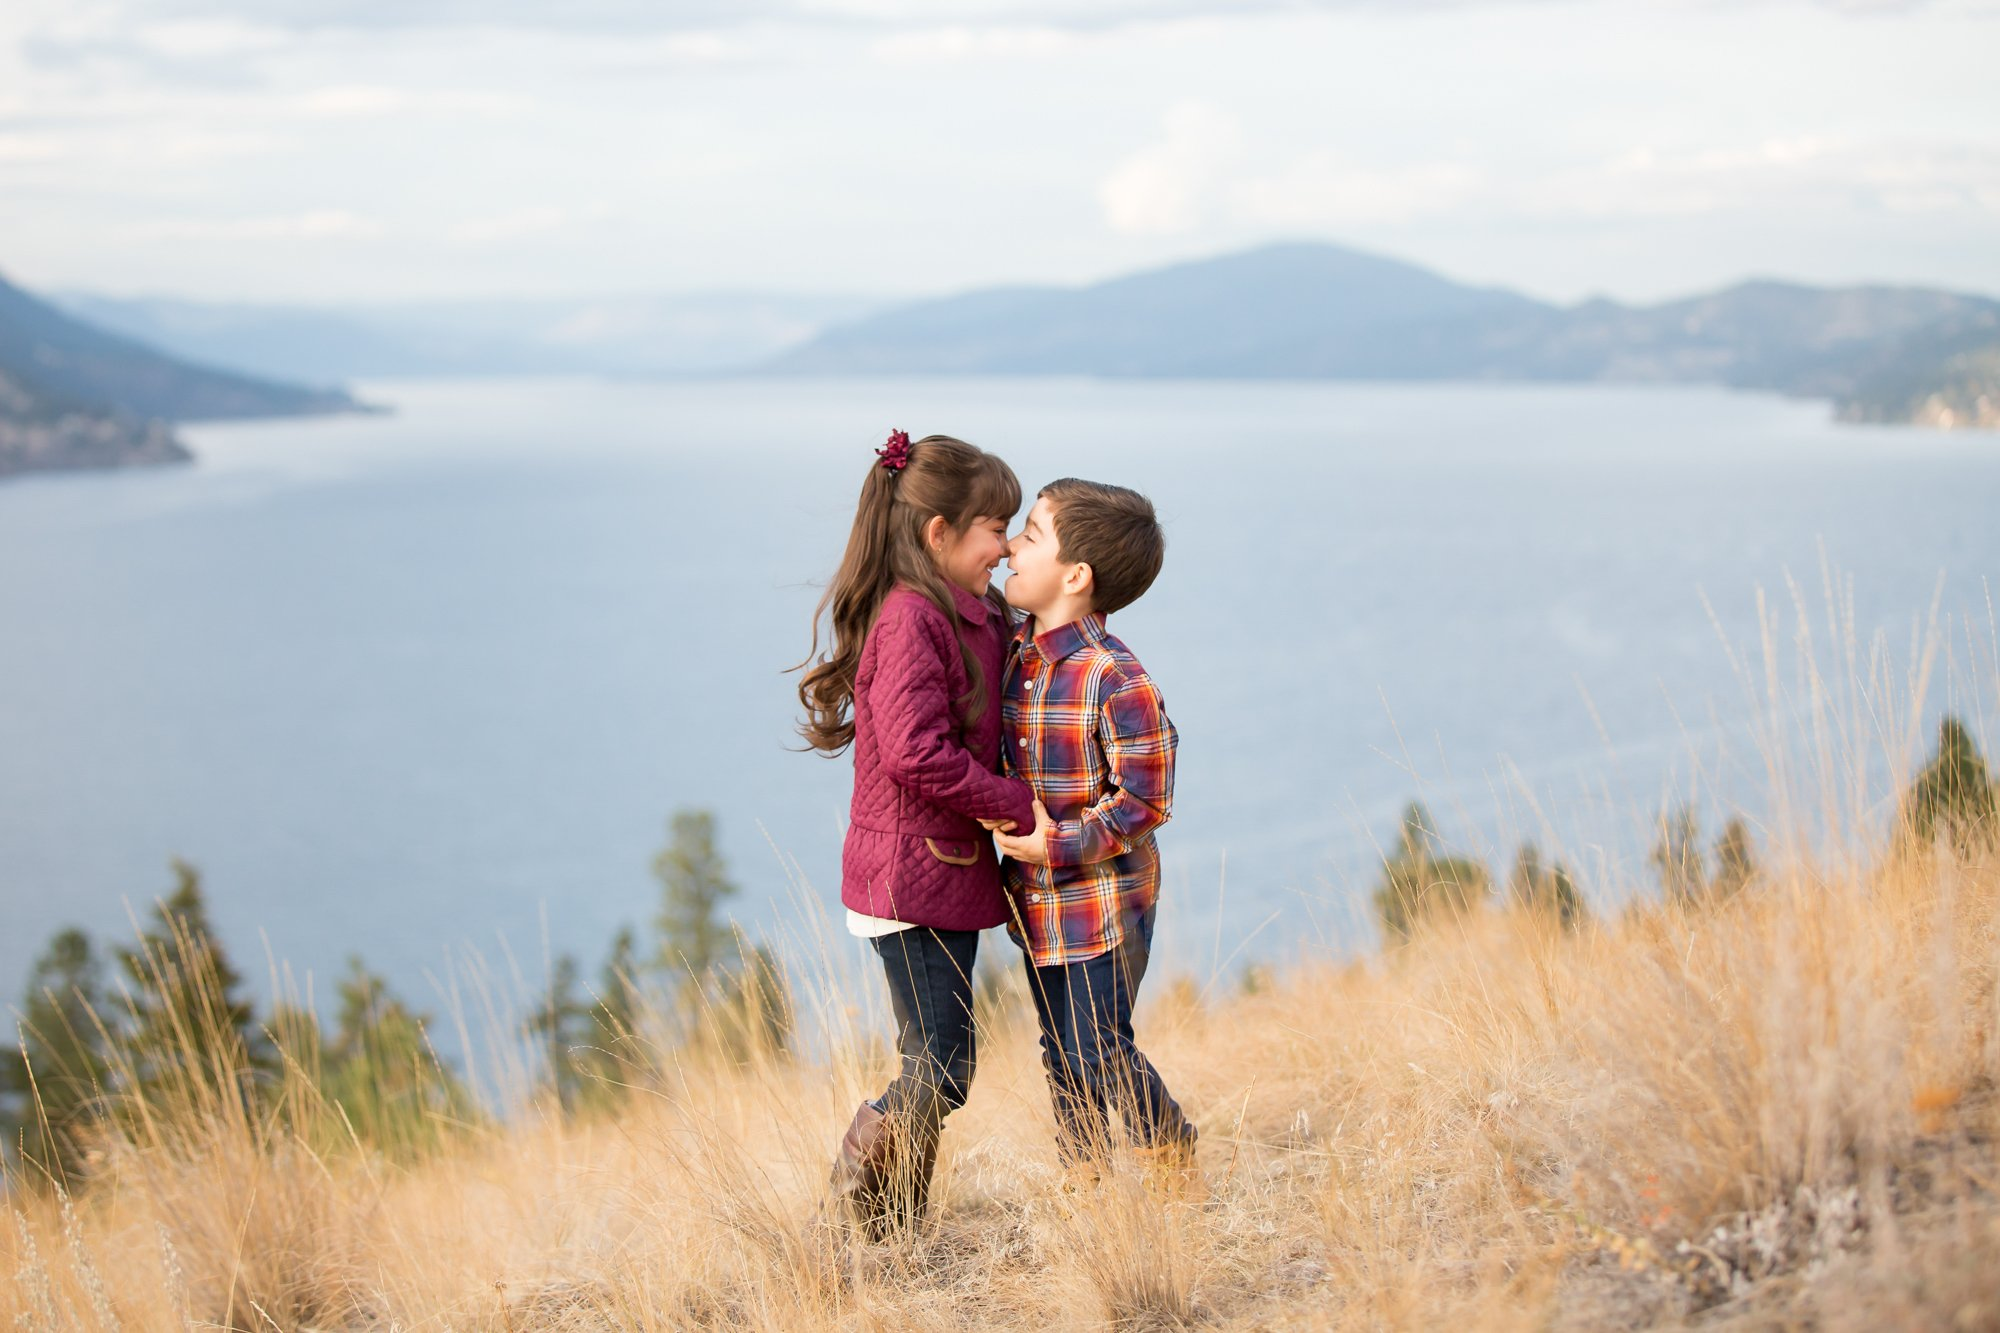 Siblings touching noses together in a field overlooking the lake